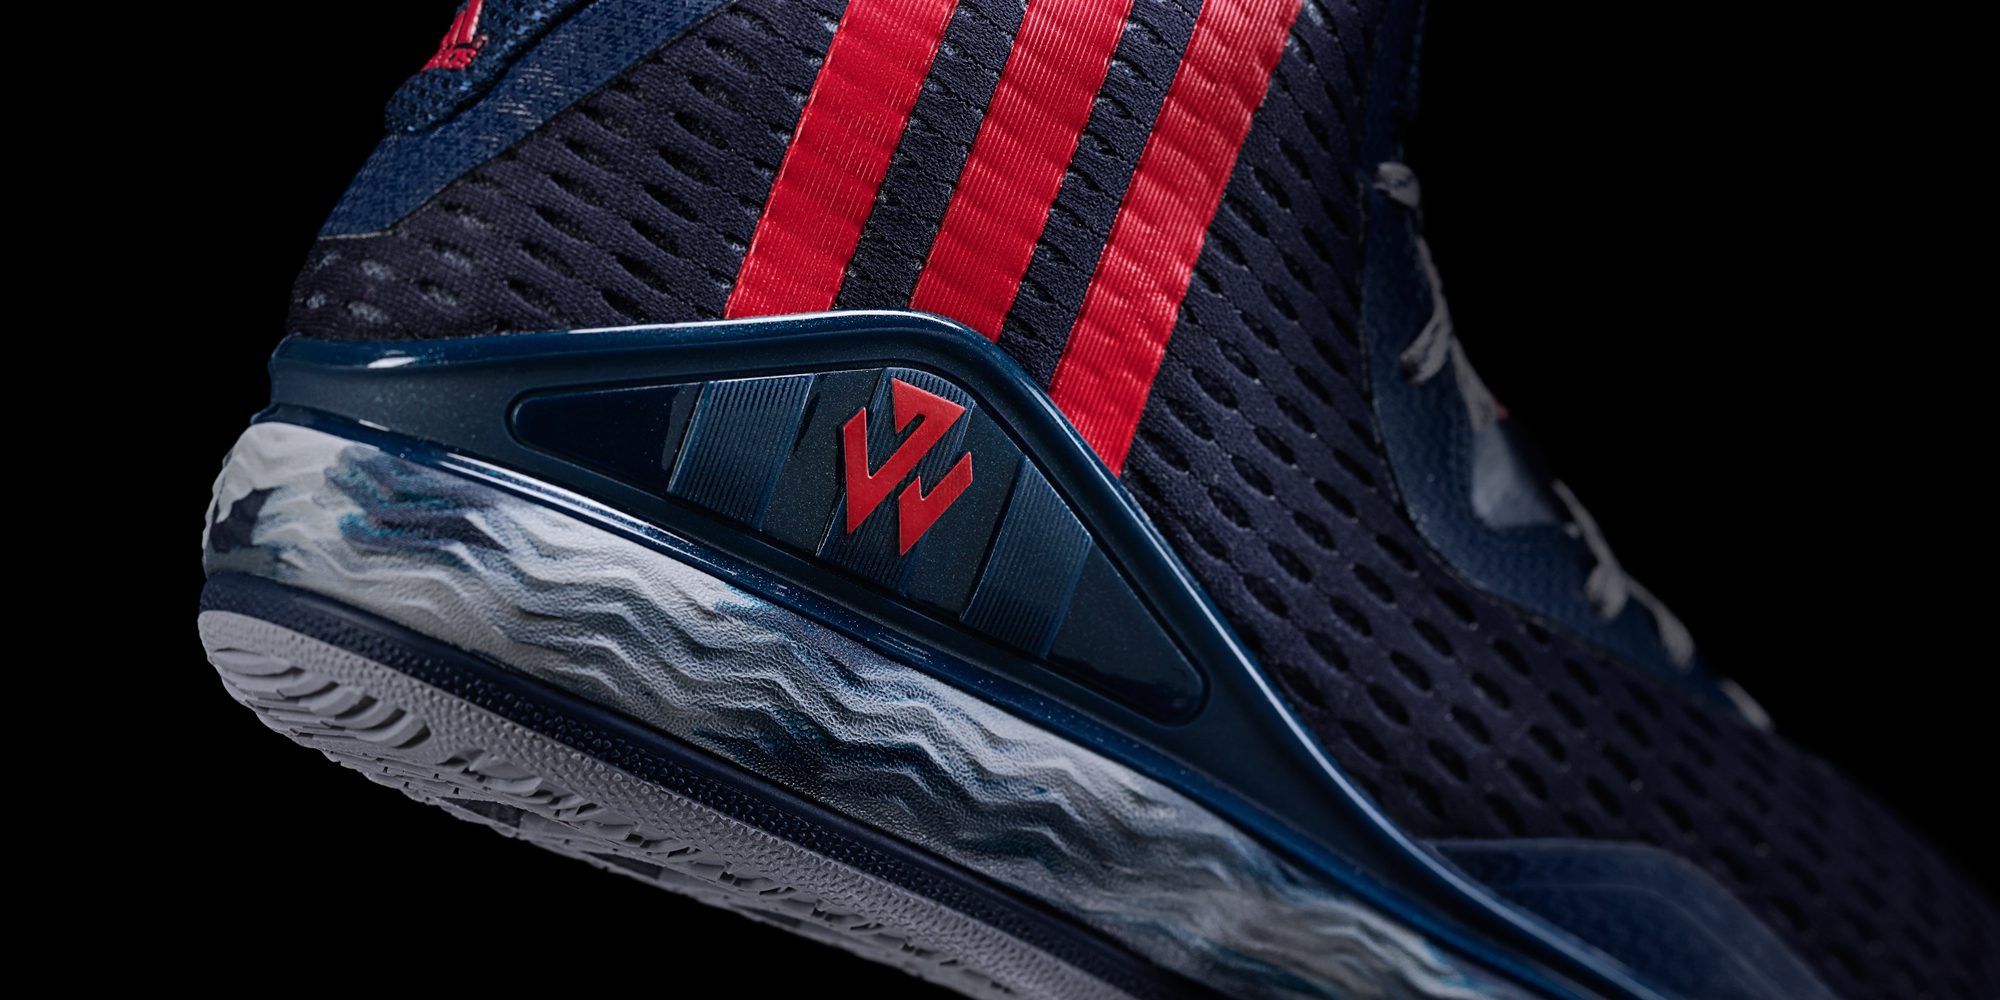 adidas J Wall 1 DC Blue (S84019) Detail 1 H